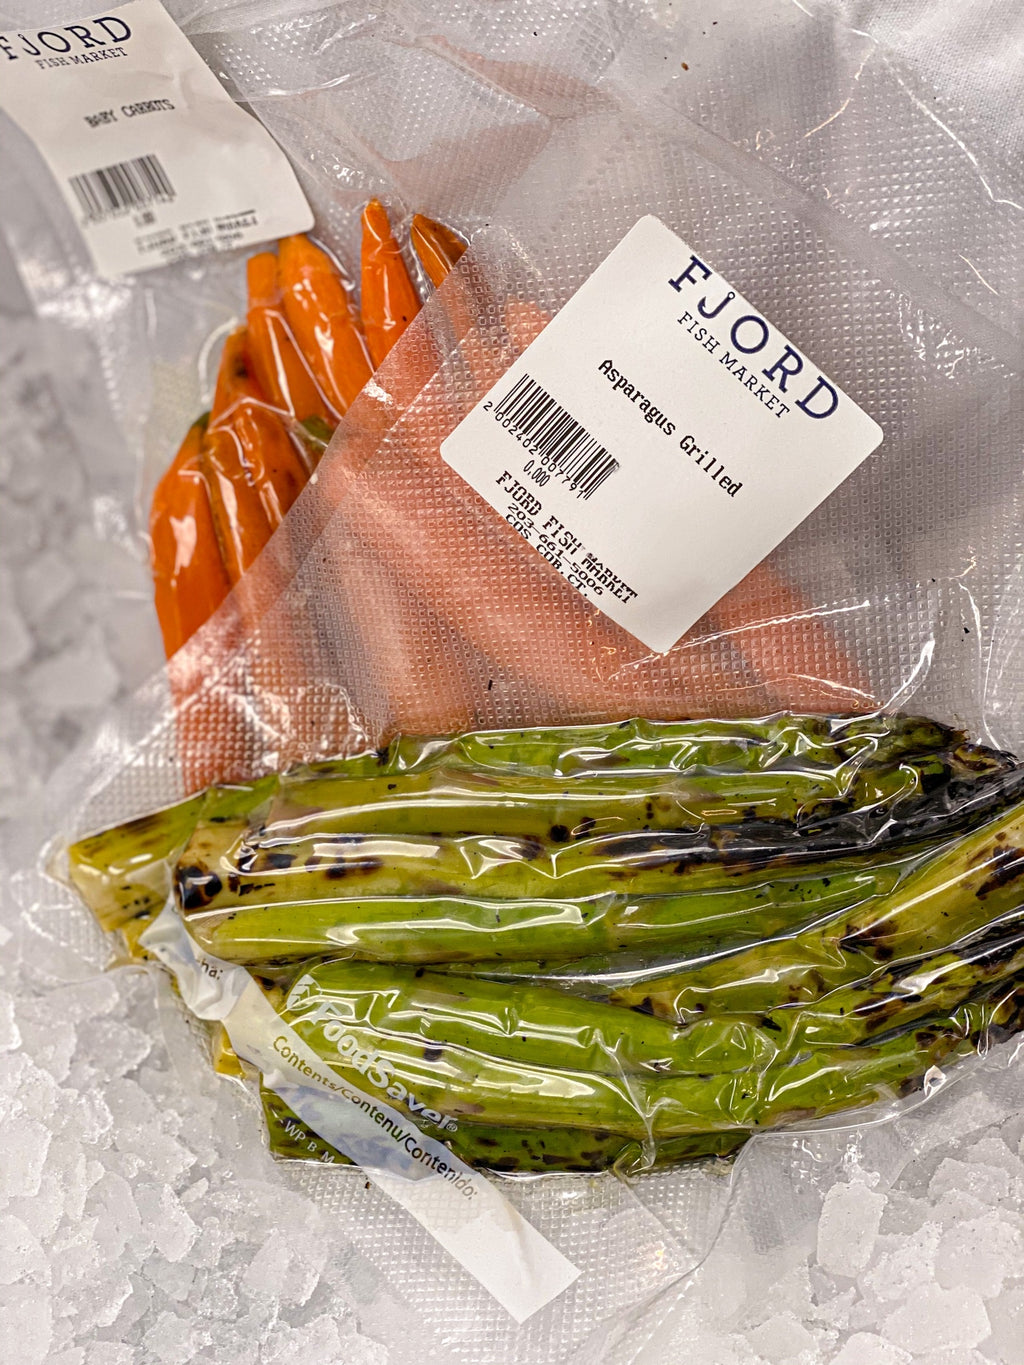 pack of asparagus and pack of carrots